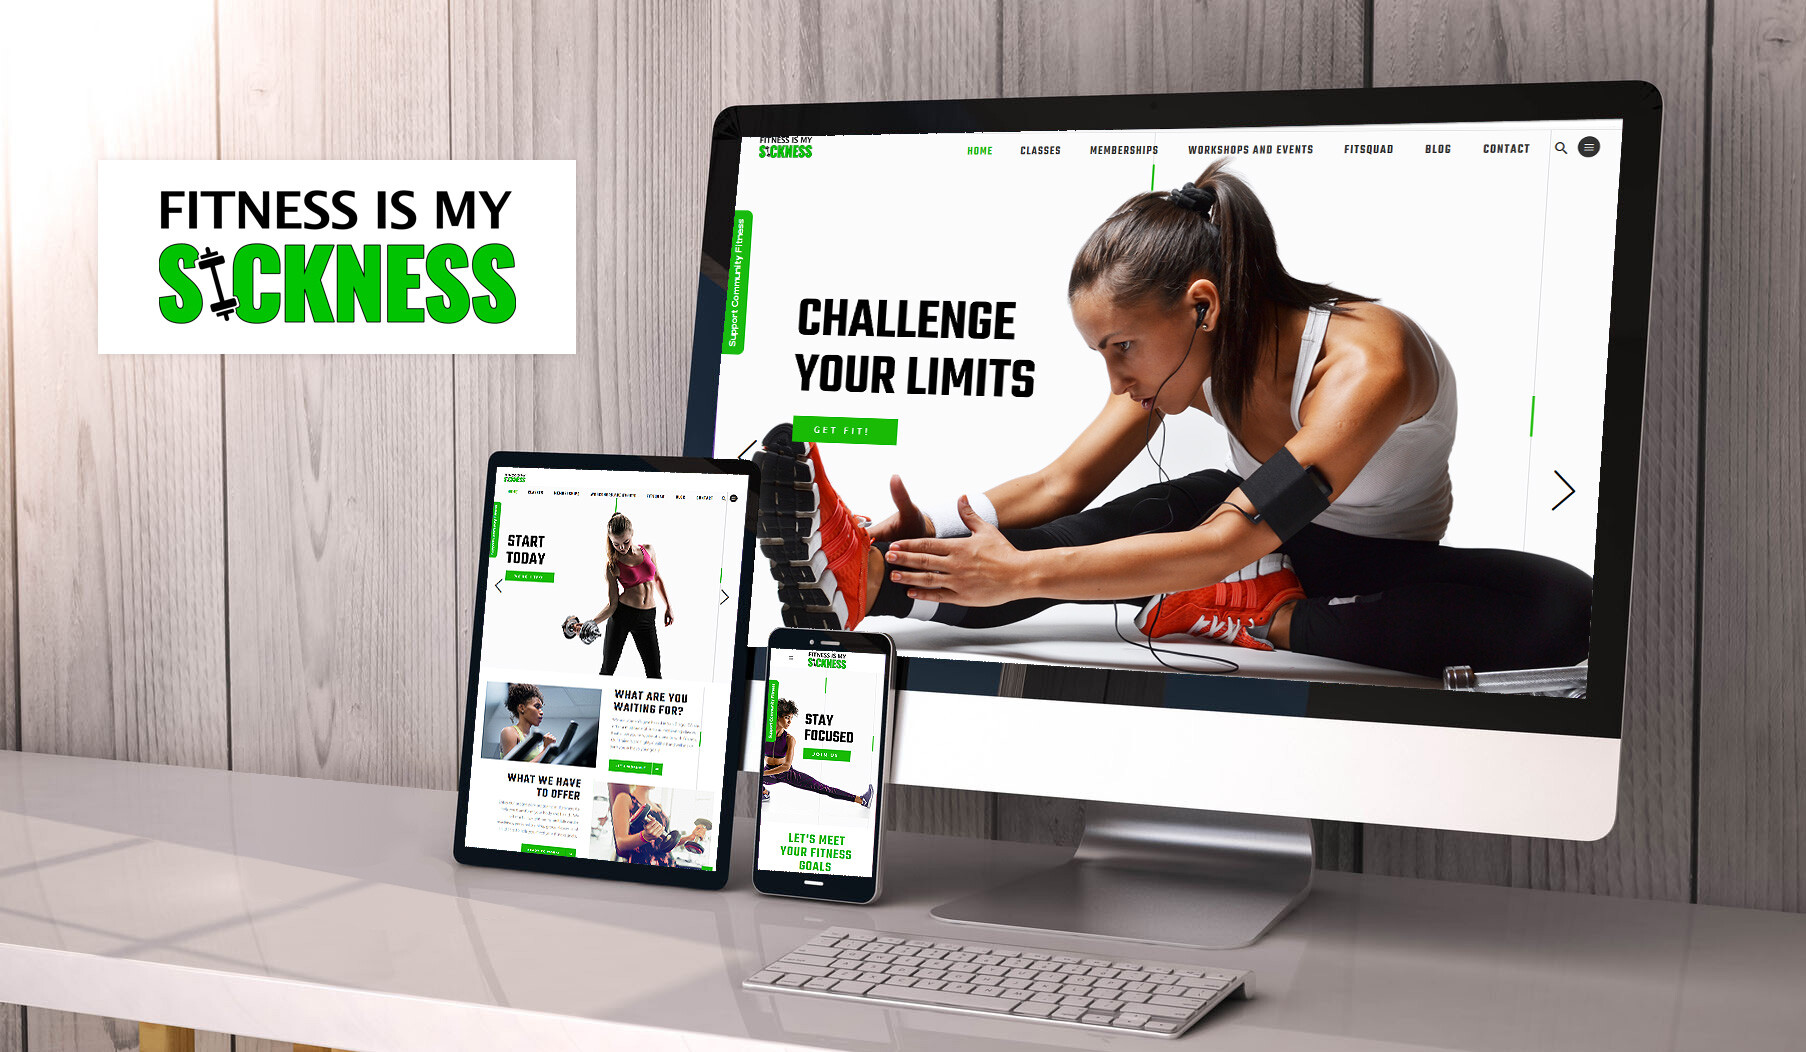 Fitness is my sickness website